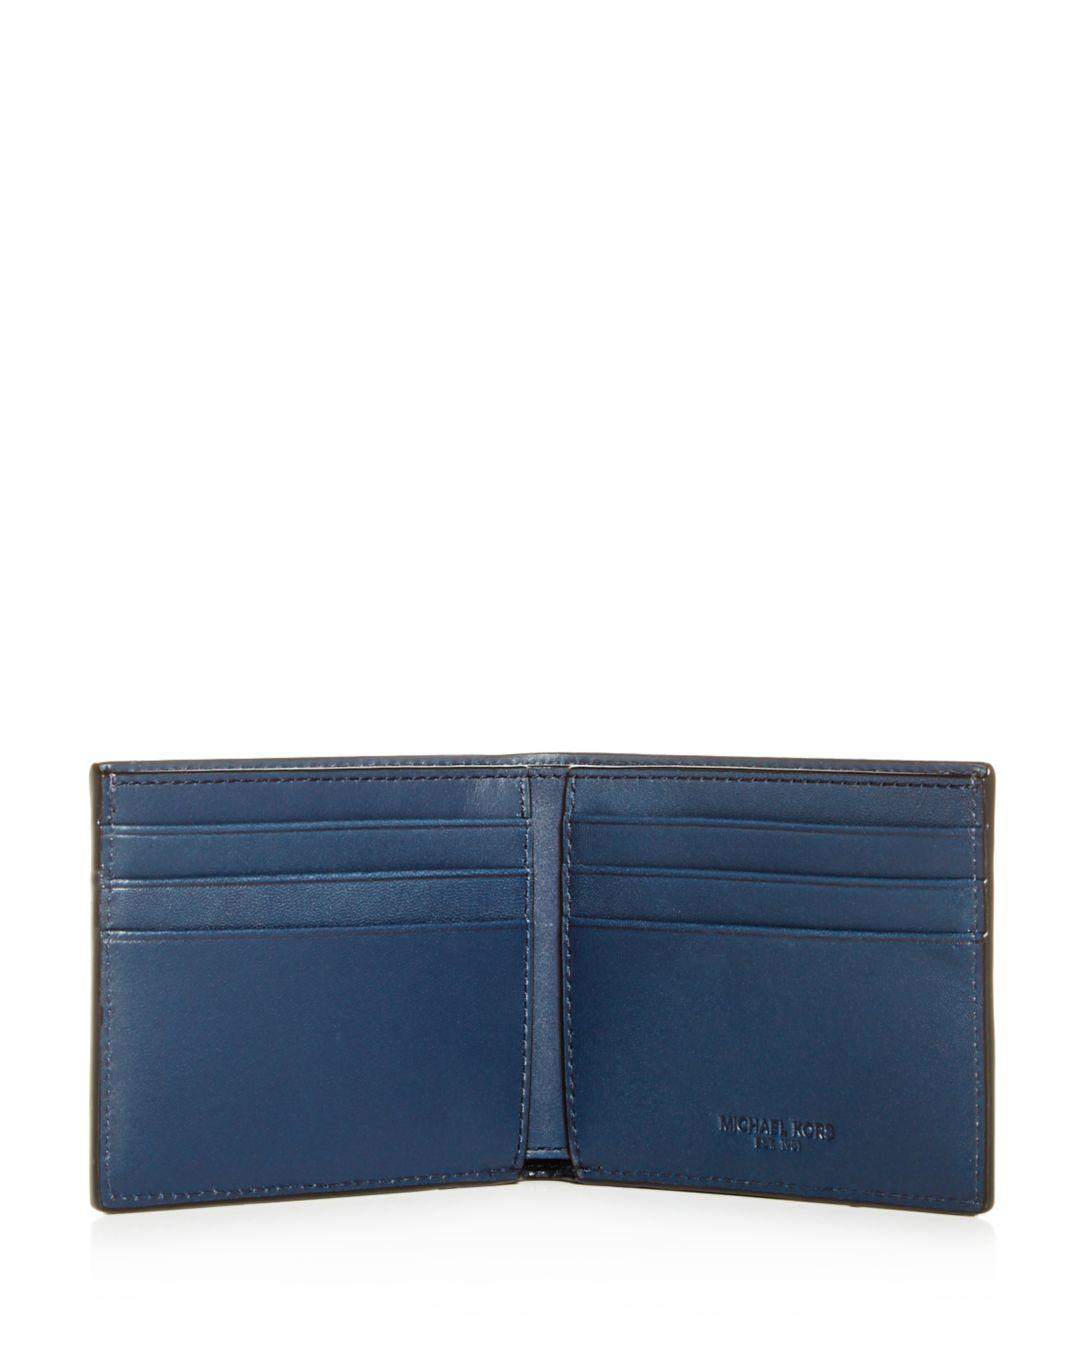 1a1ac431a8f3 Michael Kors Henry Slim Leather Bi-fold Wallet in Blue for Men - Lyst